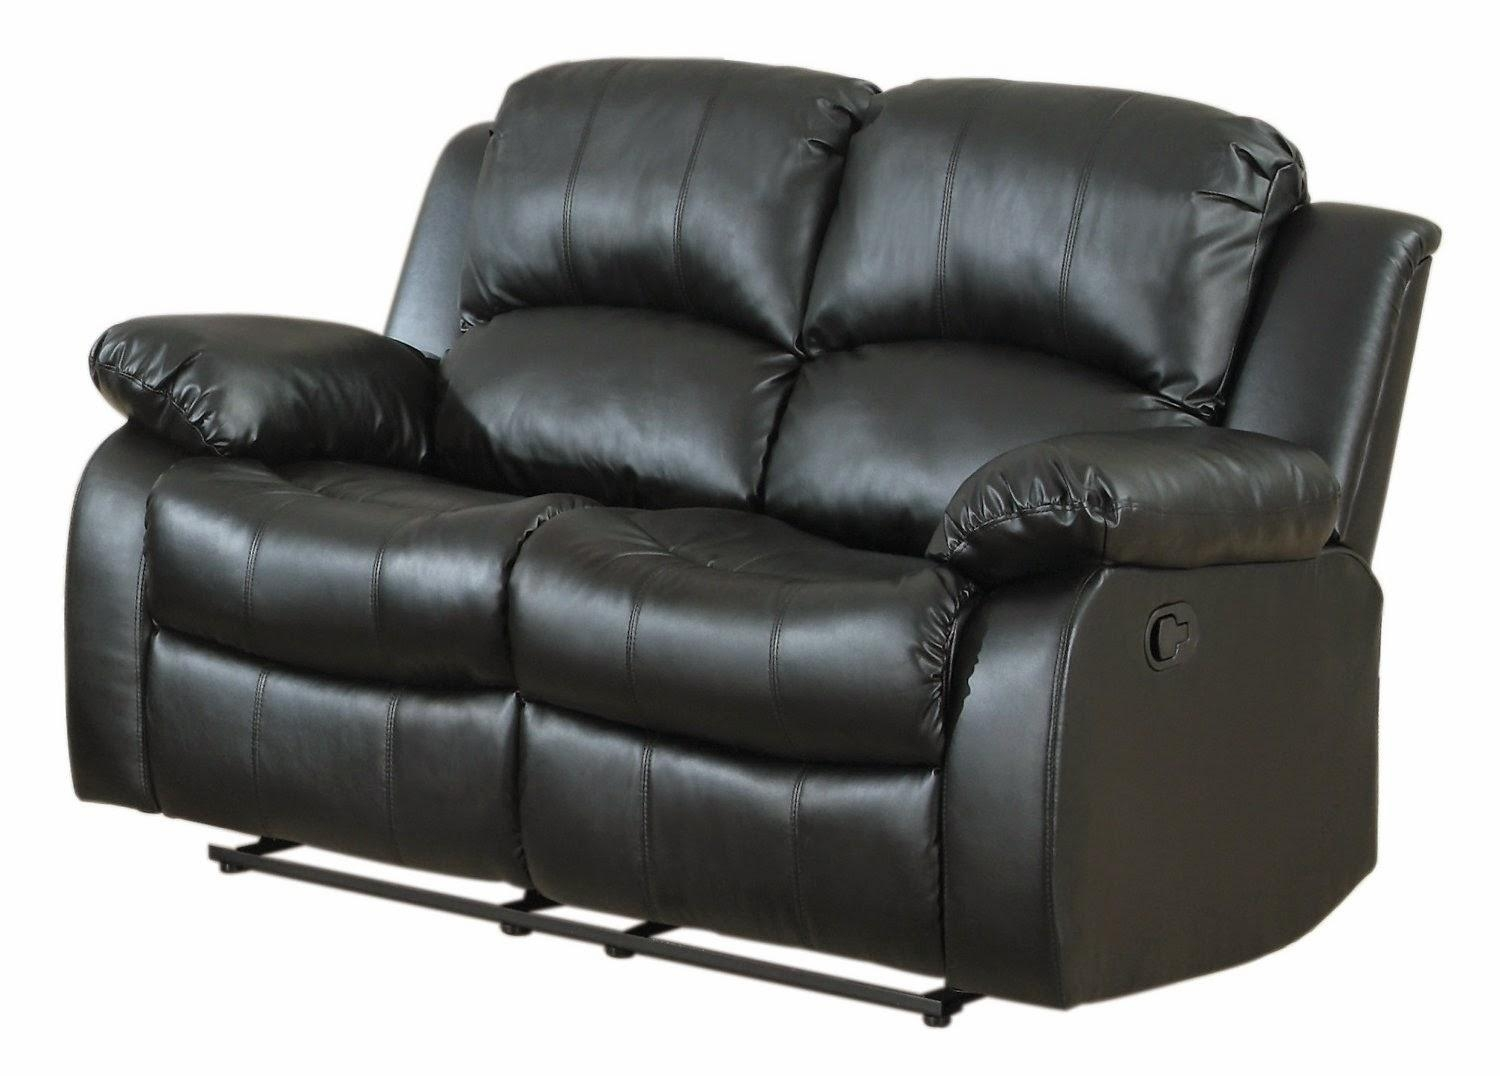 Sofas Center : Costco Leather Reclining Sofa Sofas And With Regard To Berkline Sofa Recliner (View 7 of 20)